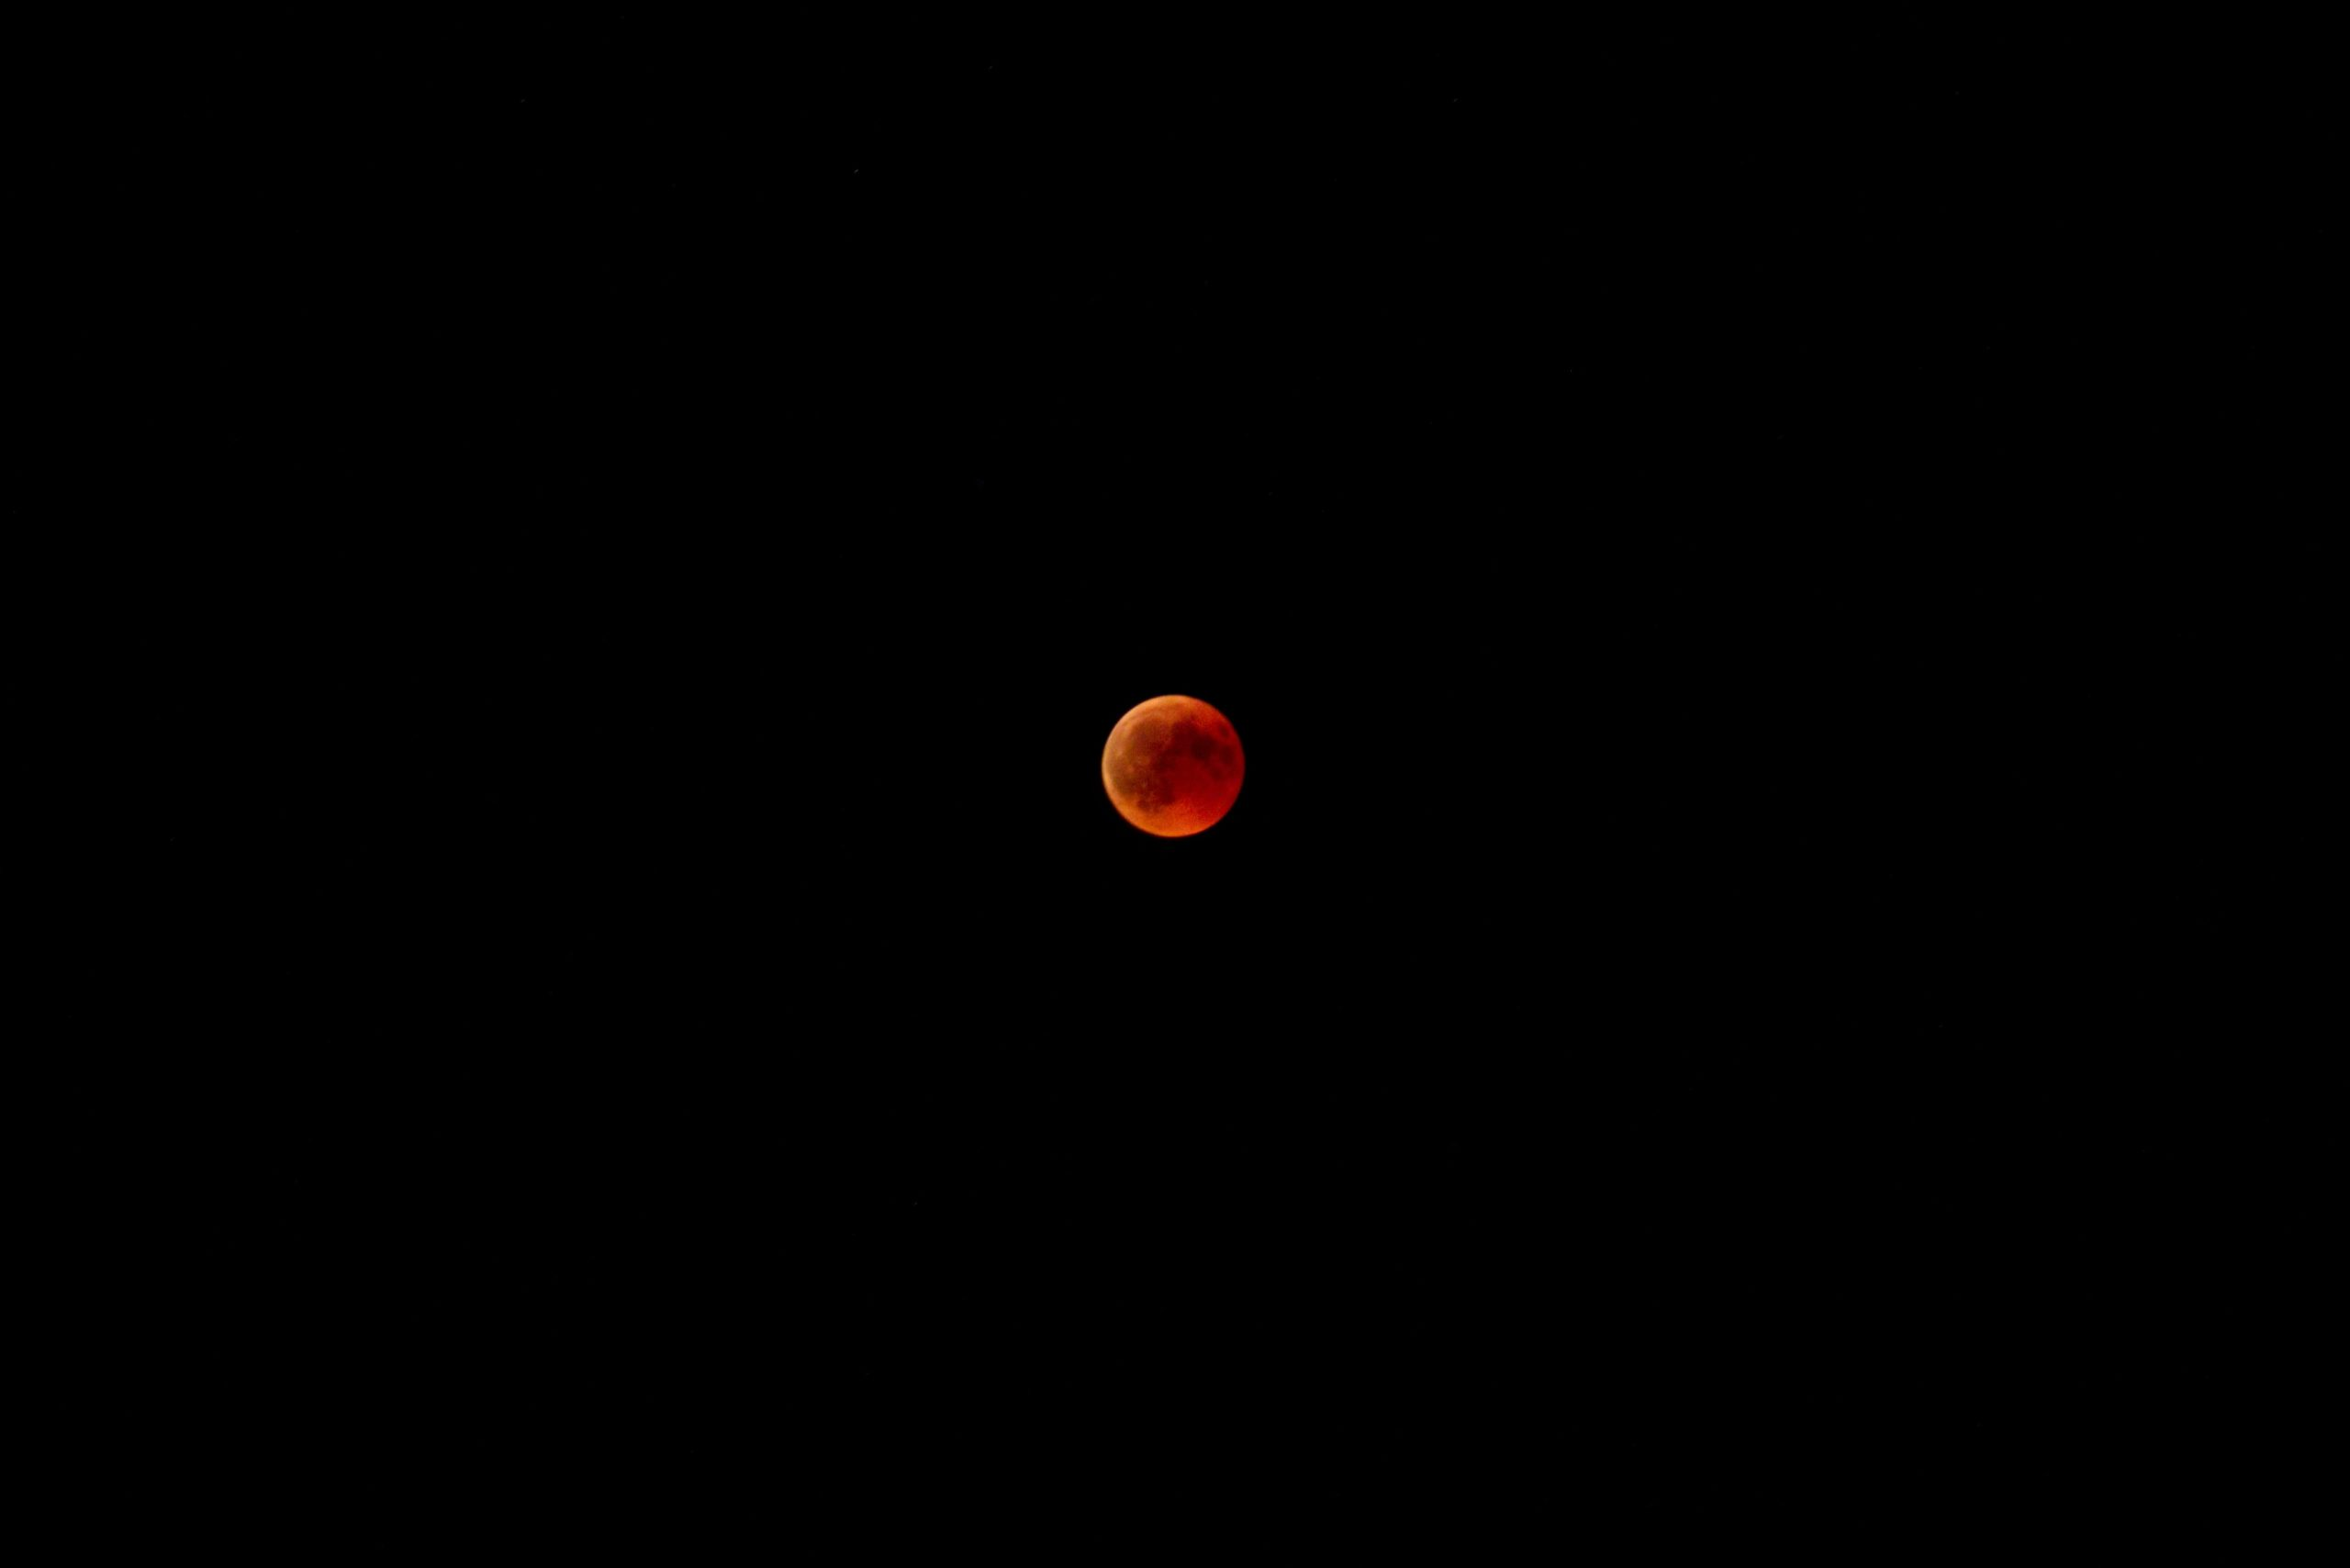 Red Moon - maybe that's how Moon look like when you walk on Mars